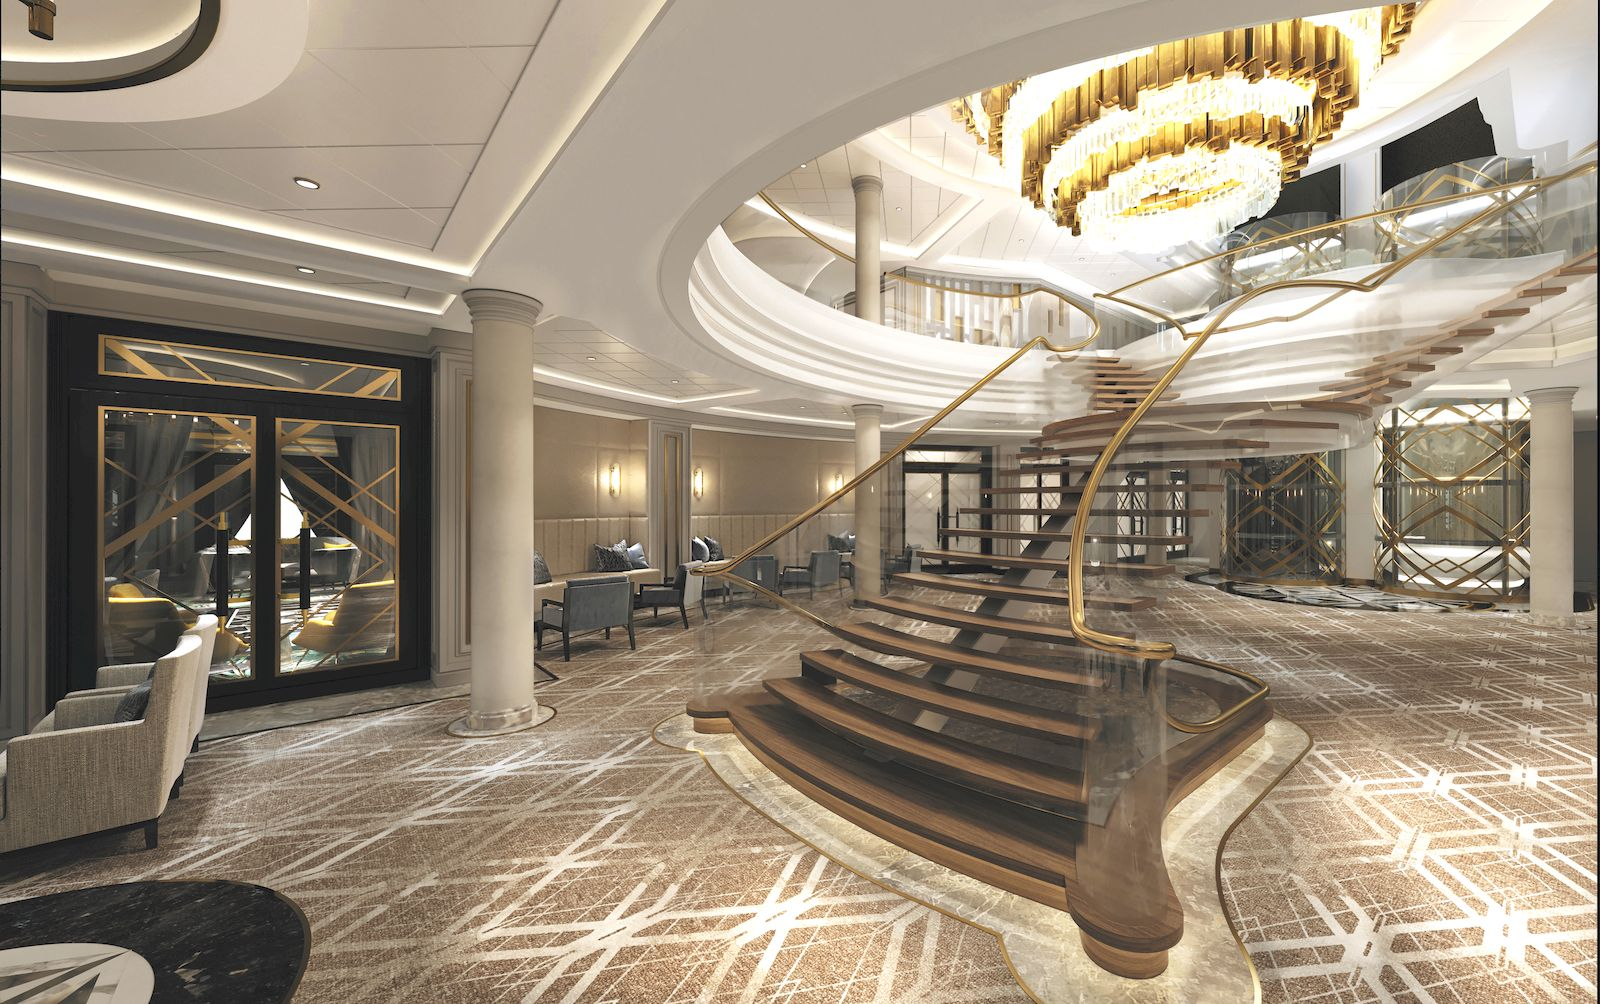 Explore Europe on-board Regent Seven Seas Cruises' all new Seven Seas Splendor